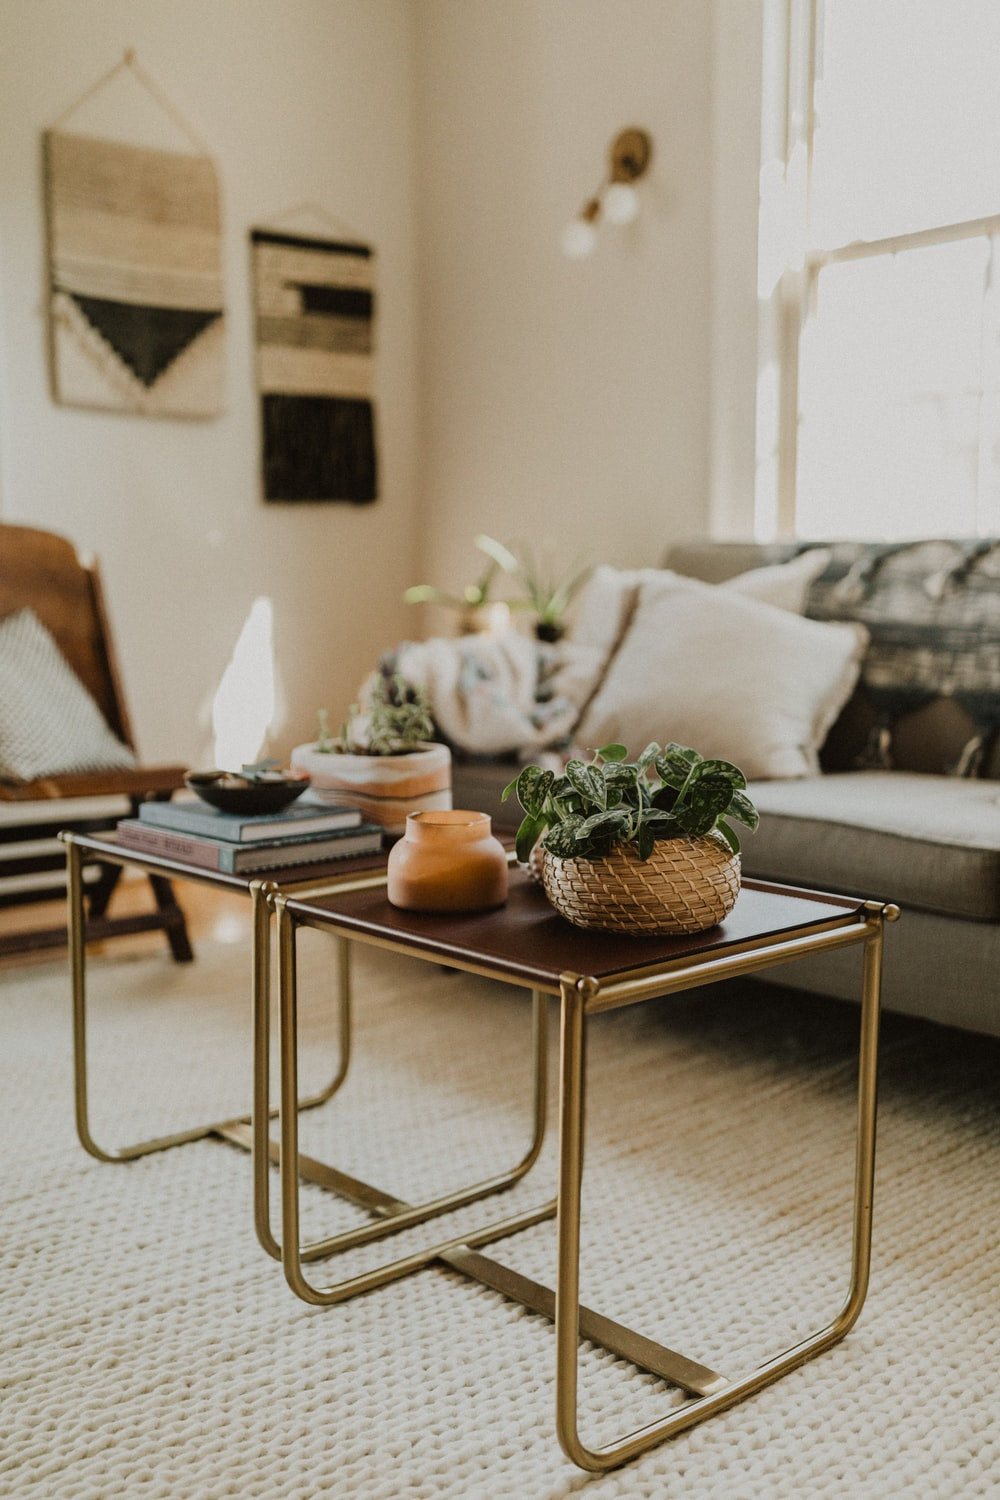 Pleasant 500 Coffee Table Pictures Download Free Images On Unsplash Caraccident5 Cool Chair Designs And Ideas Caraccident5Info